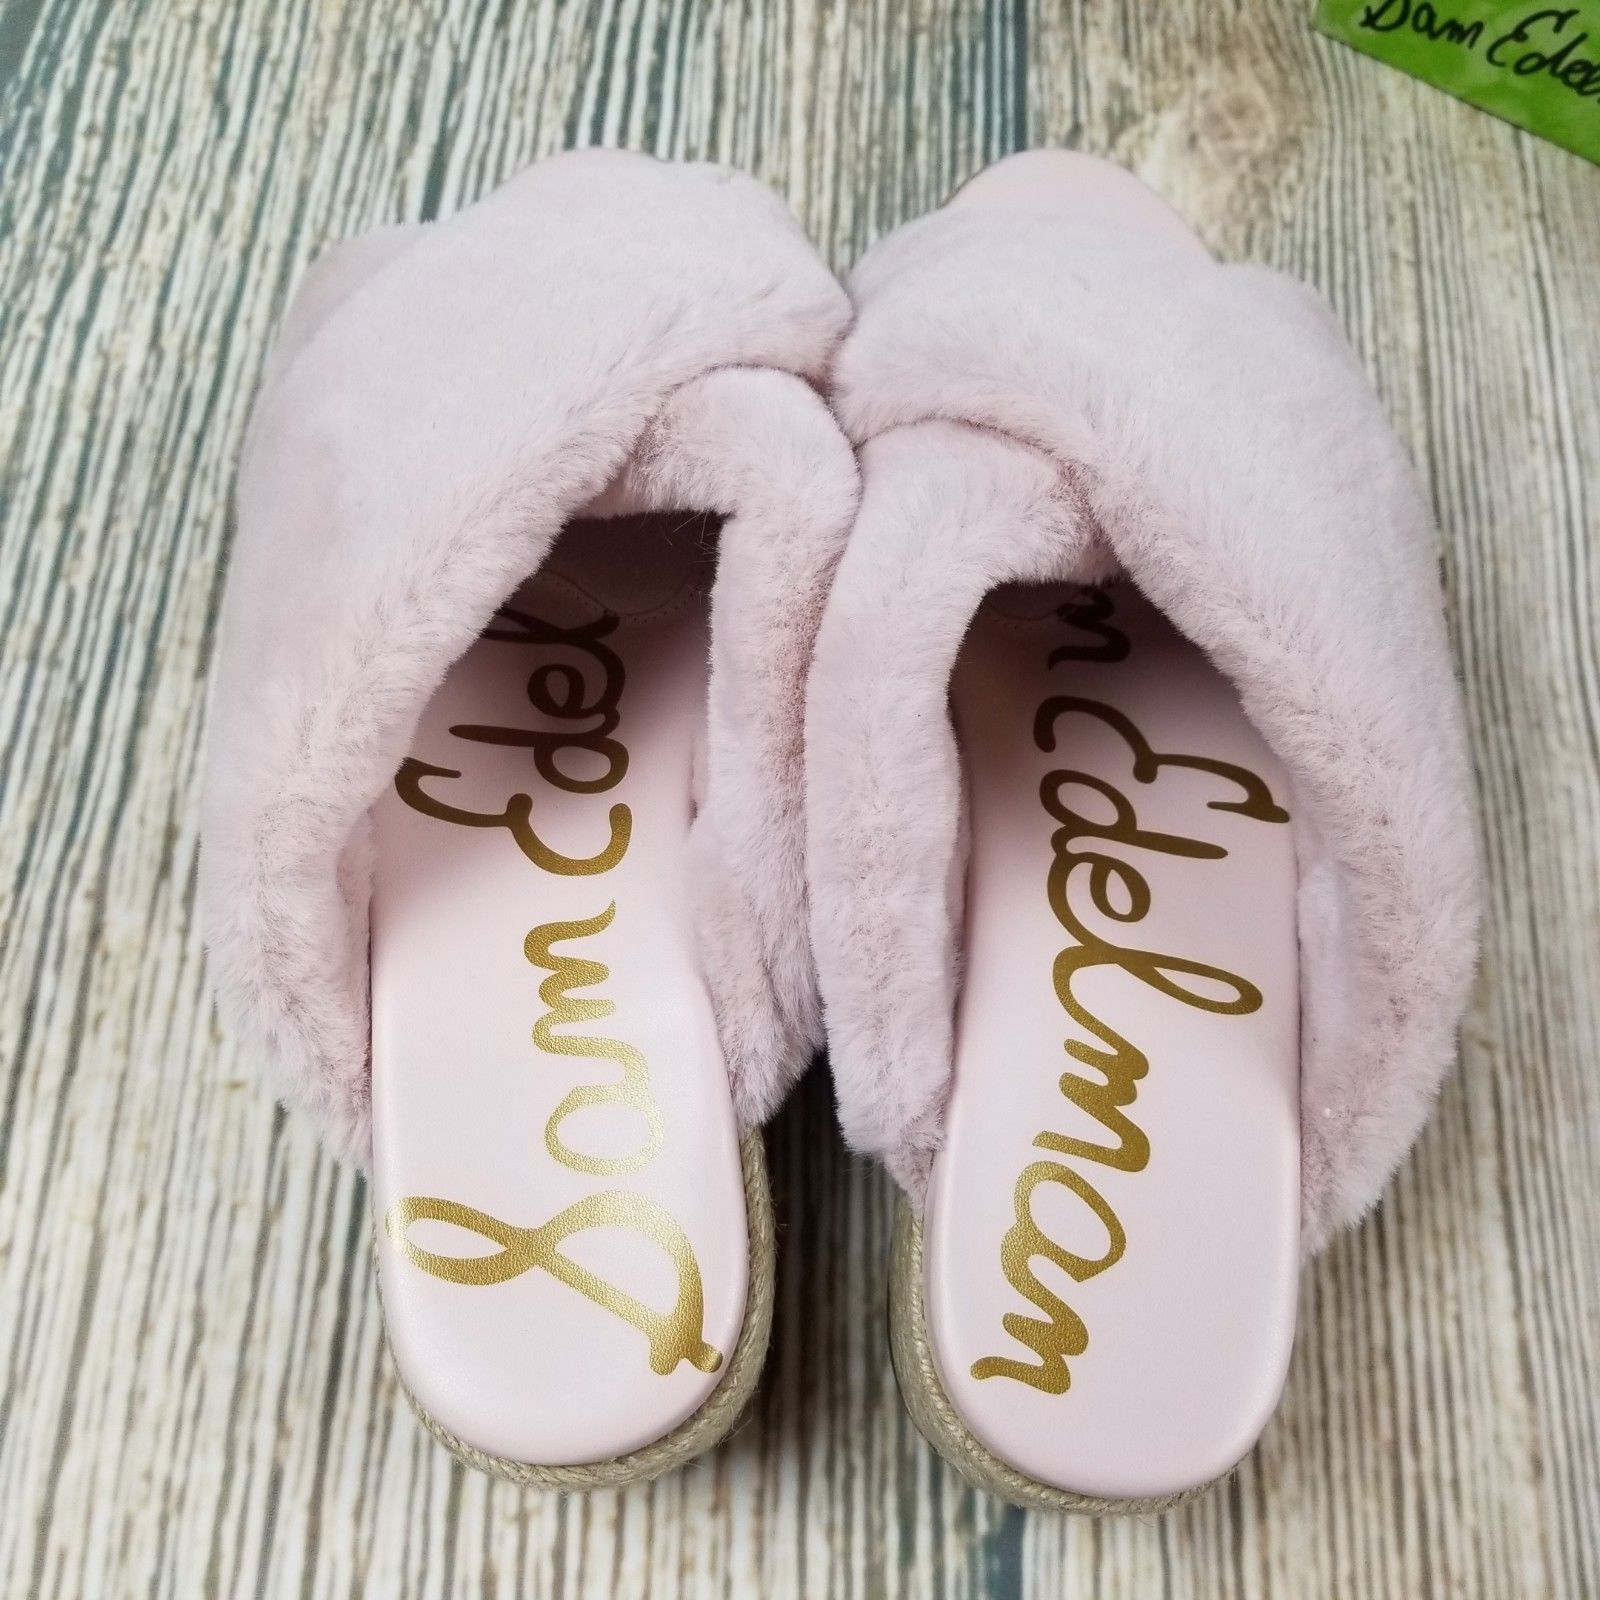 New SAM EDELMAN sz 8M/8.5M pink faux fur zia platform slip on sandal $90